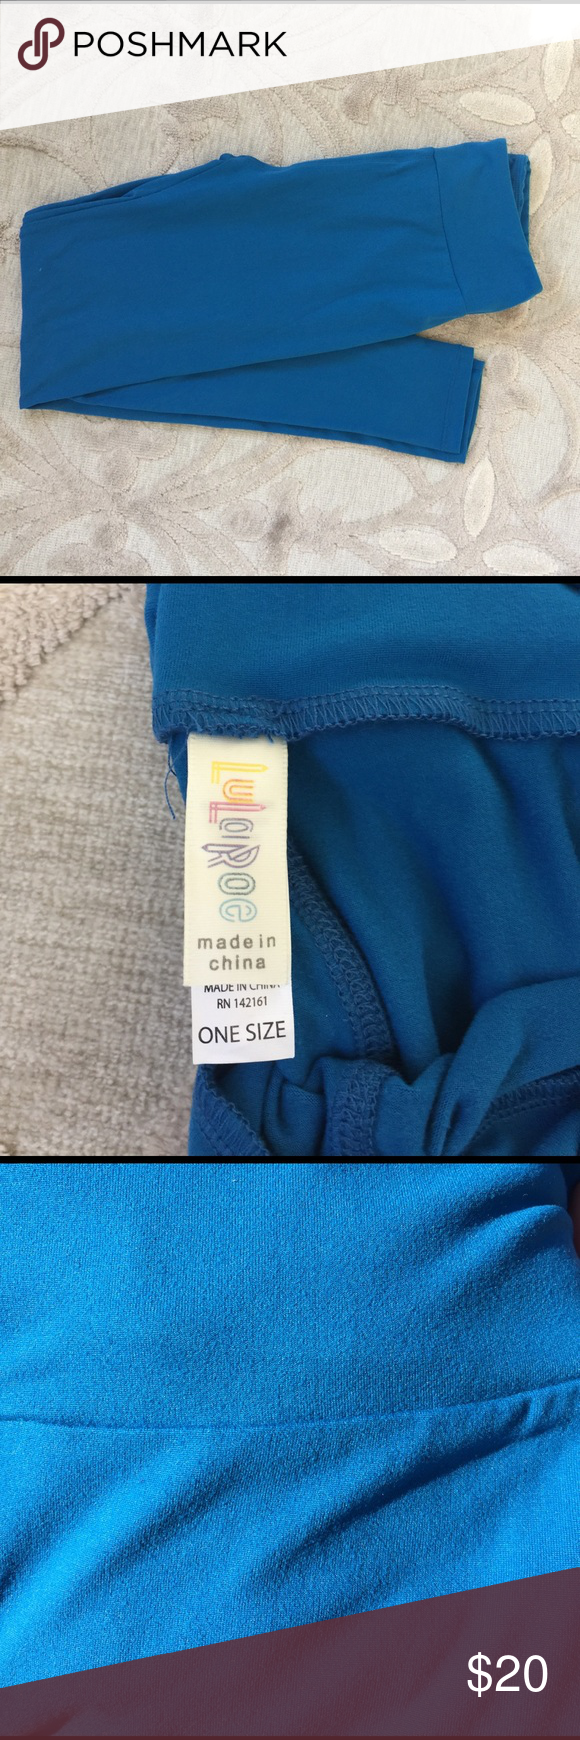 LulaRoe Solid Blue Leggings One Size - OS New without tags. I bought this pair of leggings on poshmark to match a shirt. Unfortunately, did not match so I am reselling. Color is best described as a dark royal blue. Definitely not navy, royal blue or teal- rather a combination of all 3. LuLaRoe Pants Leggings